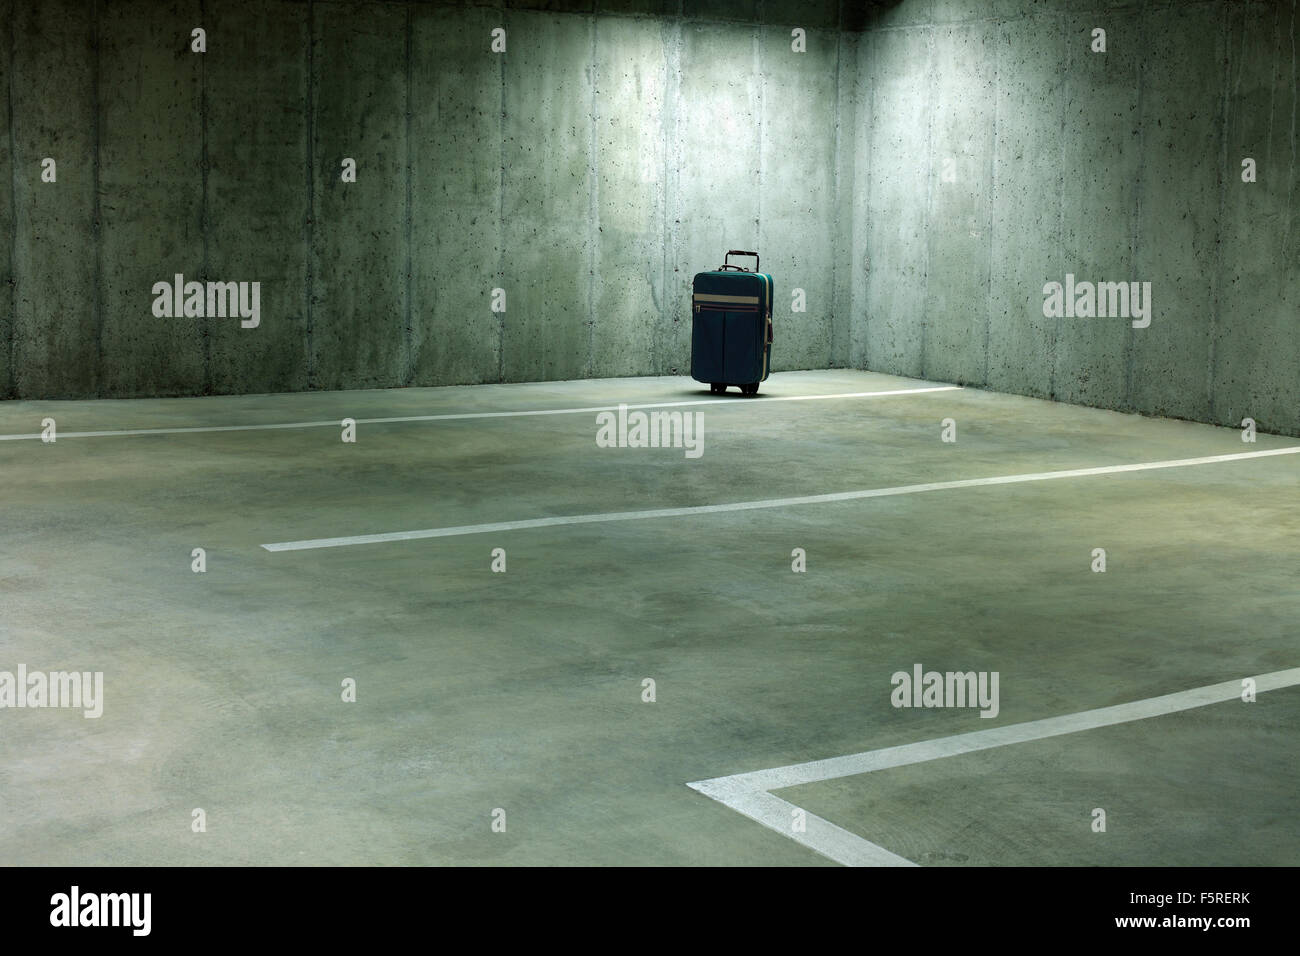 Forgotten Suitcase in Empty Parking Garage - Stock Image